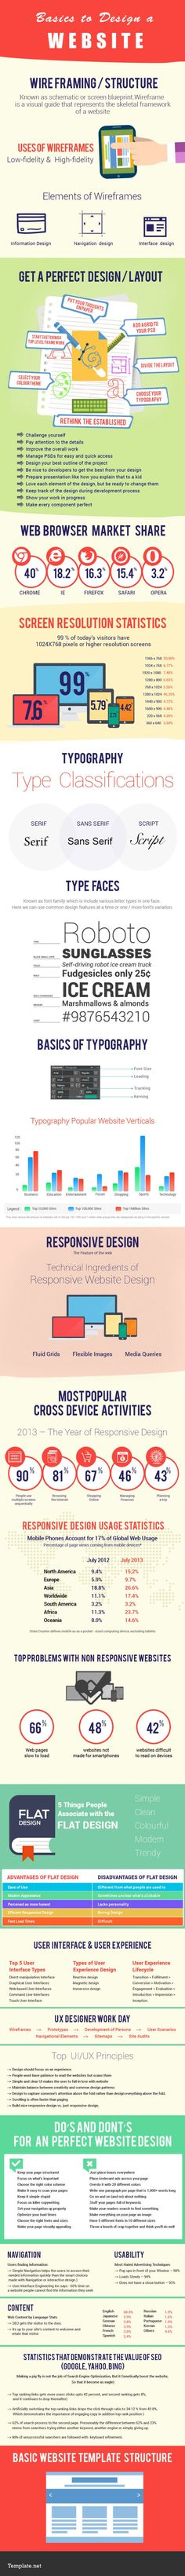 The Anatomy of a Perfect Website Template #infographic #webdesign